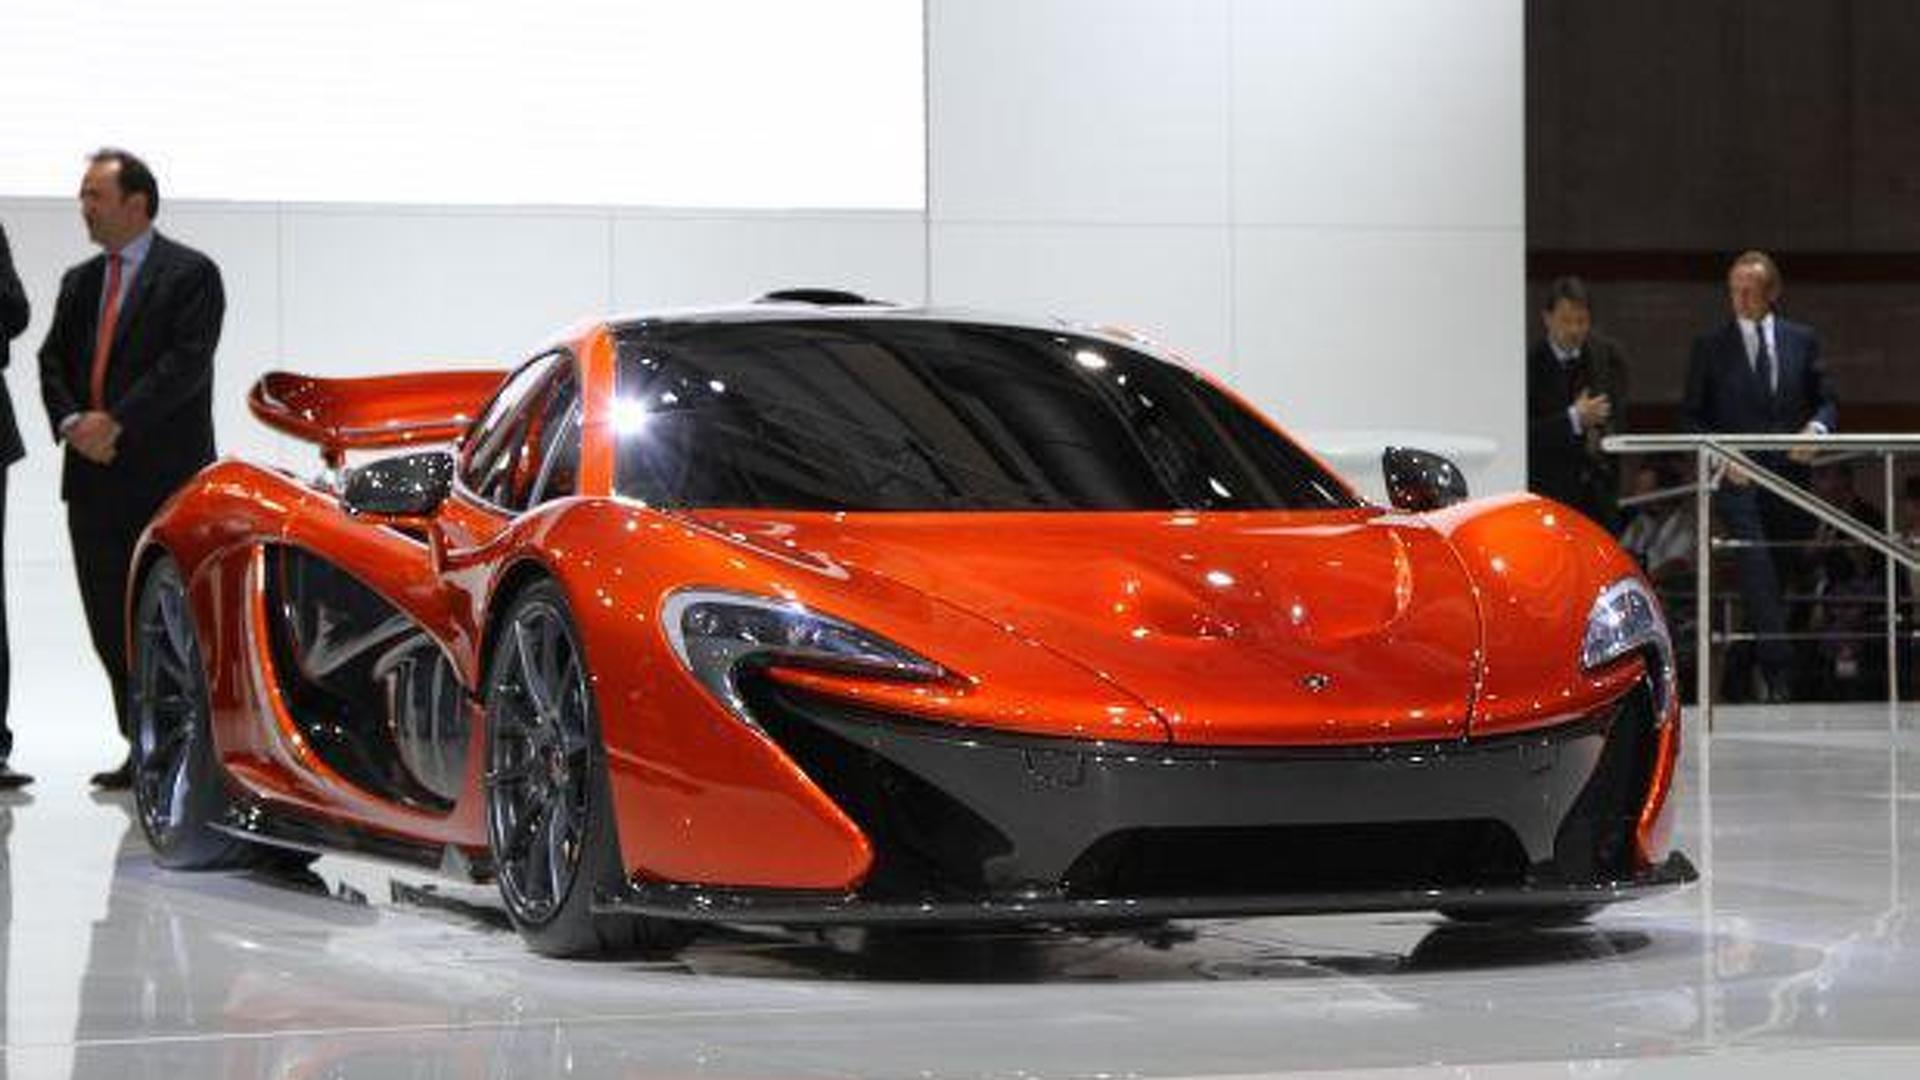 Mclaren P1 Cost >> Mclaren P1 Limited To 500 Units To Cost Around 1 2m Usd